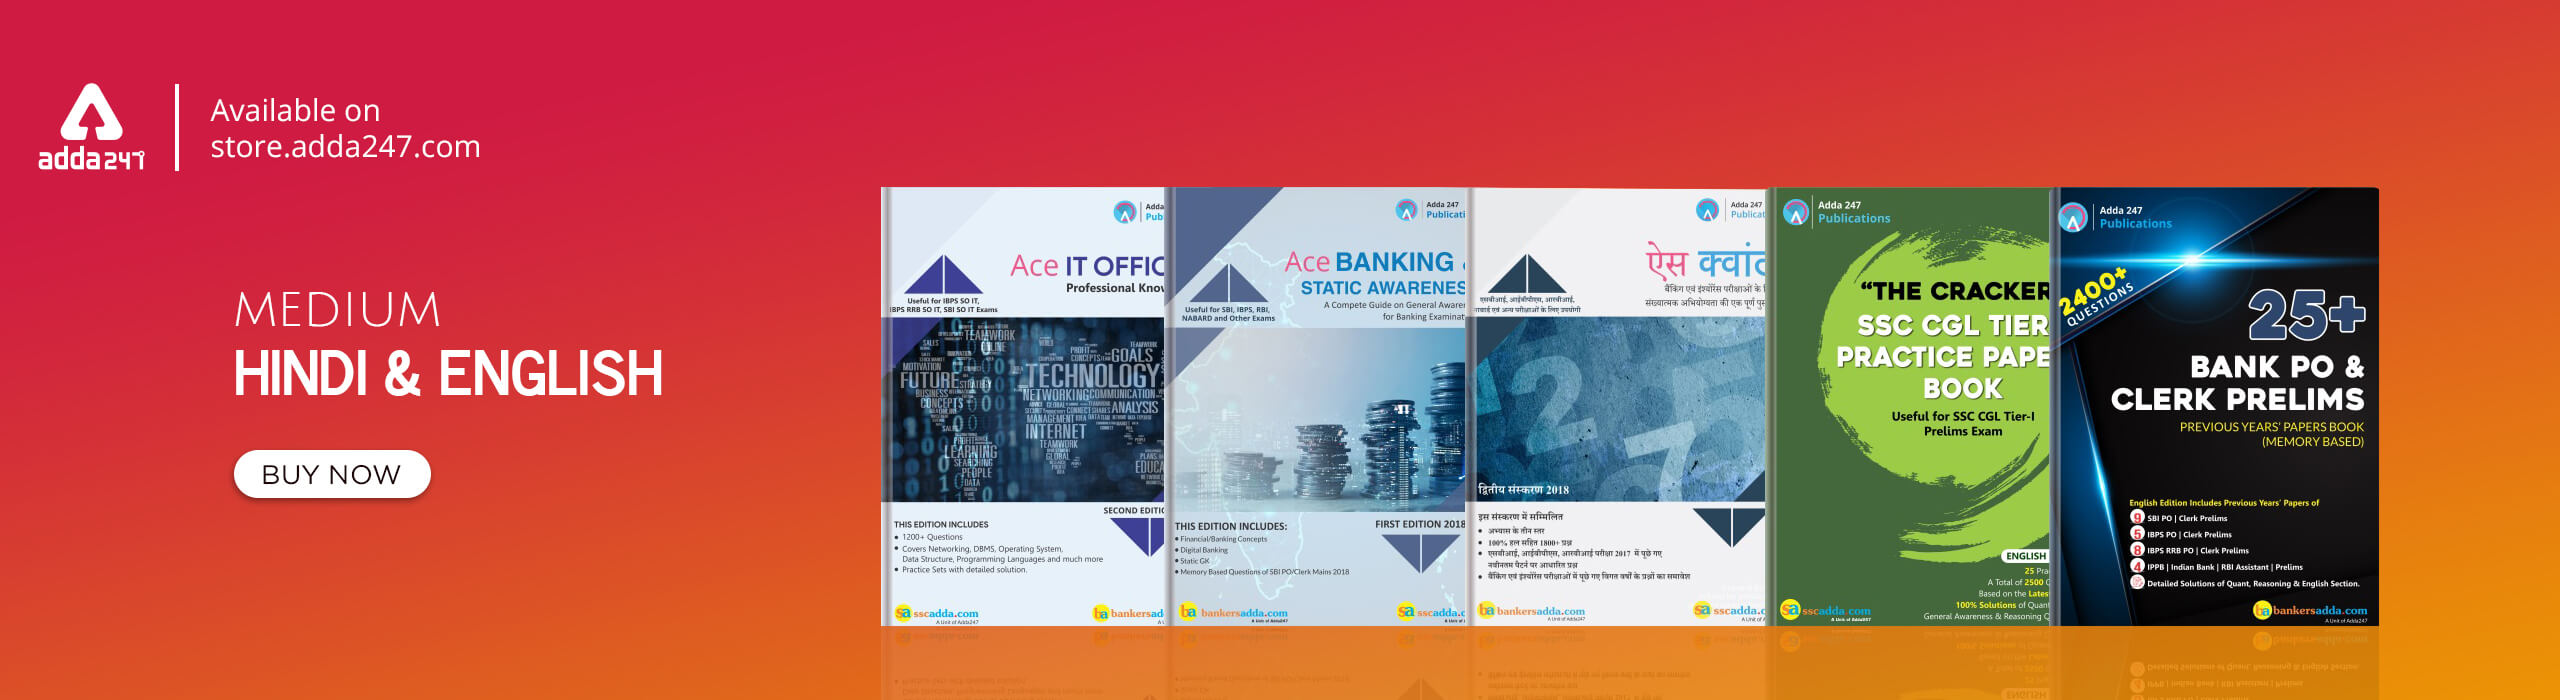 our platforms bankers addacom